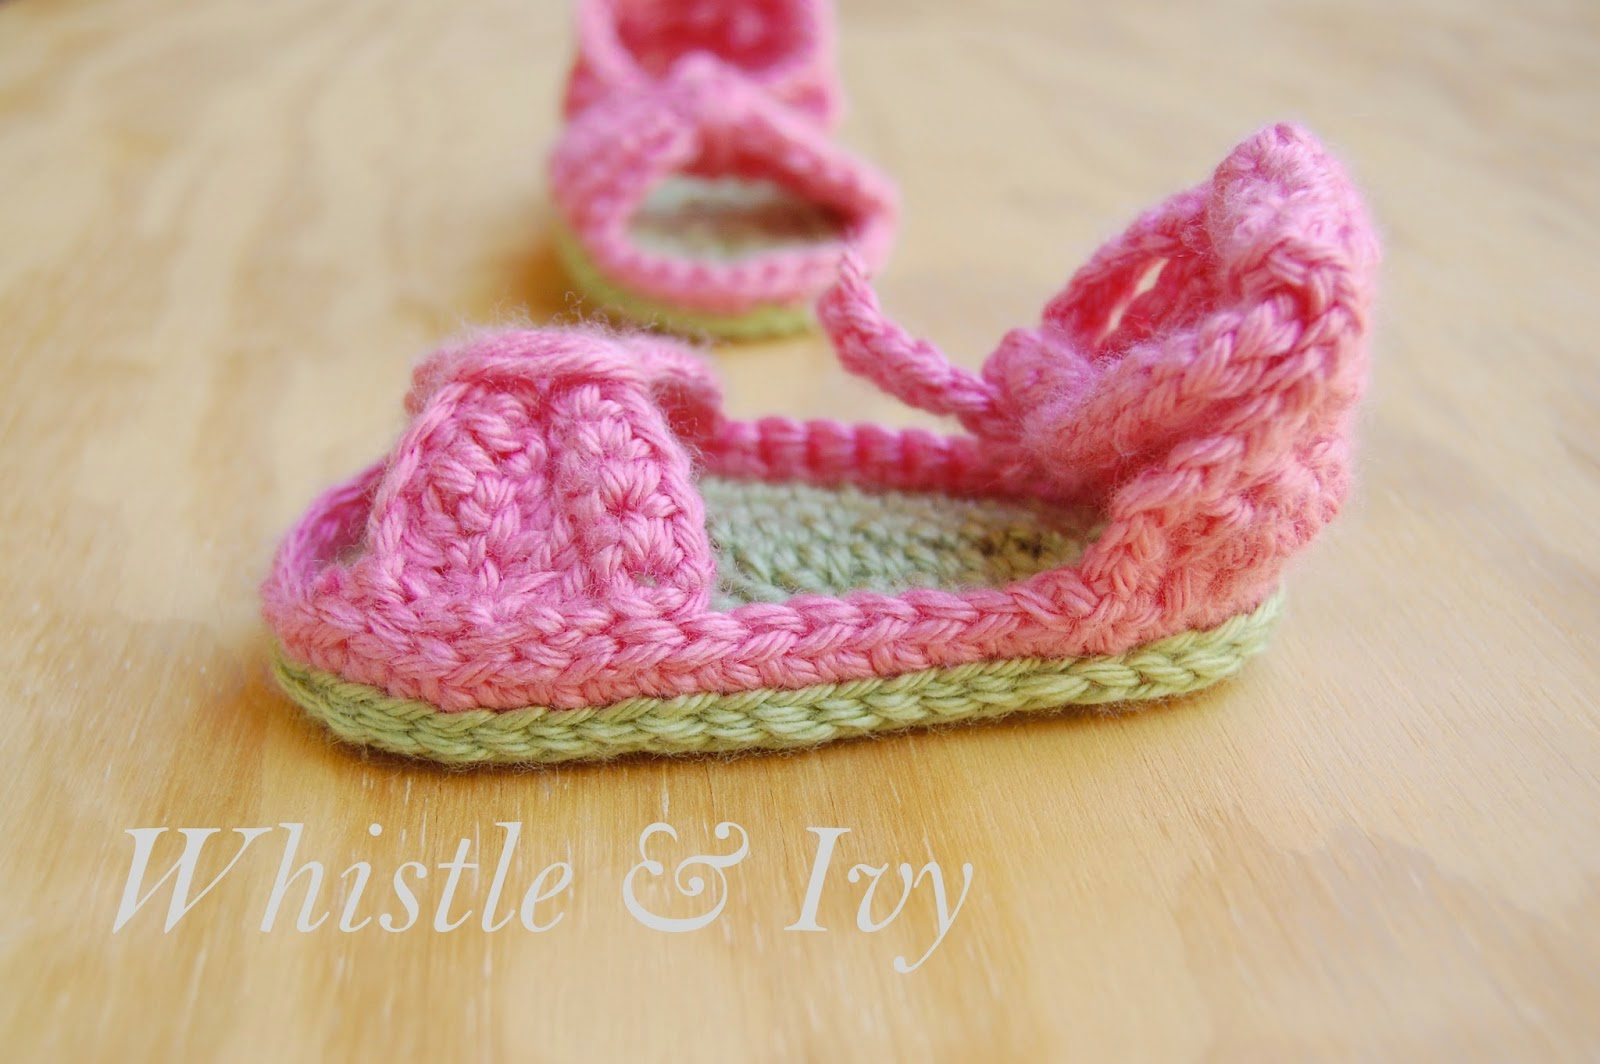 Free Crochet Patterns Baby Booties Mary Janes : Free Crochet Patterns and Designs by LisaAuch: Free ...